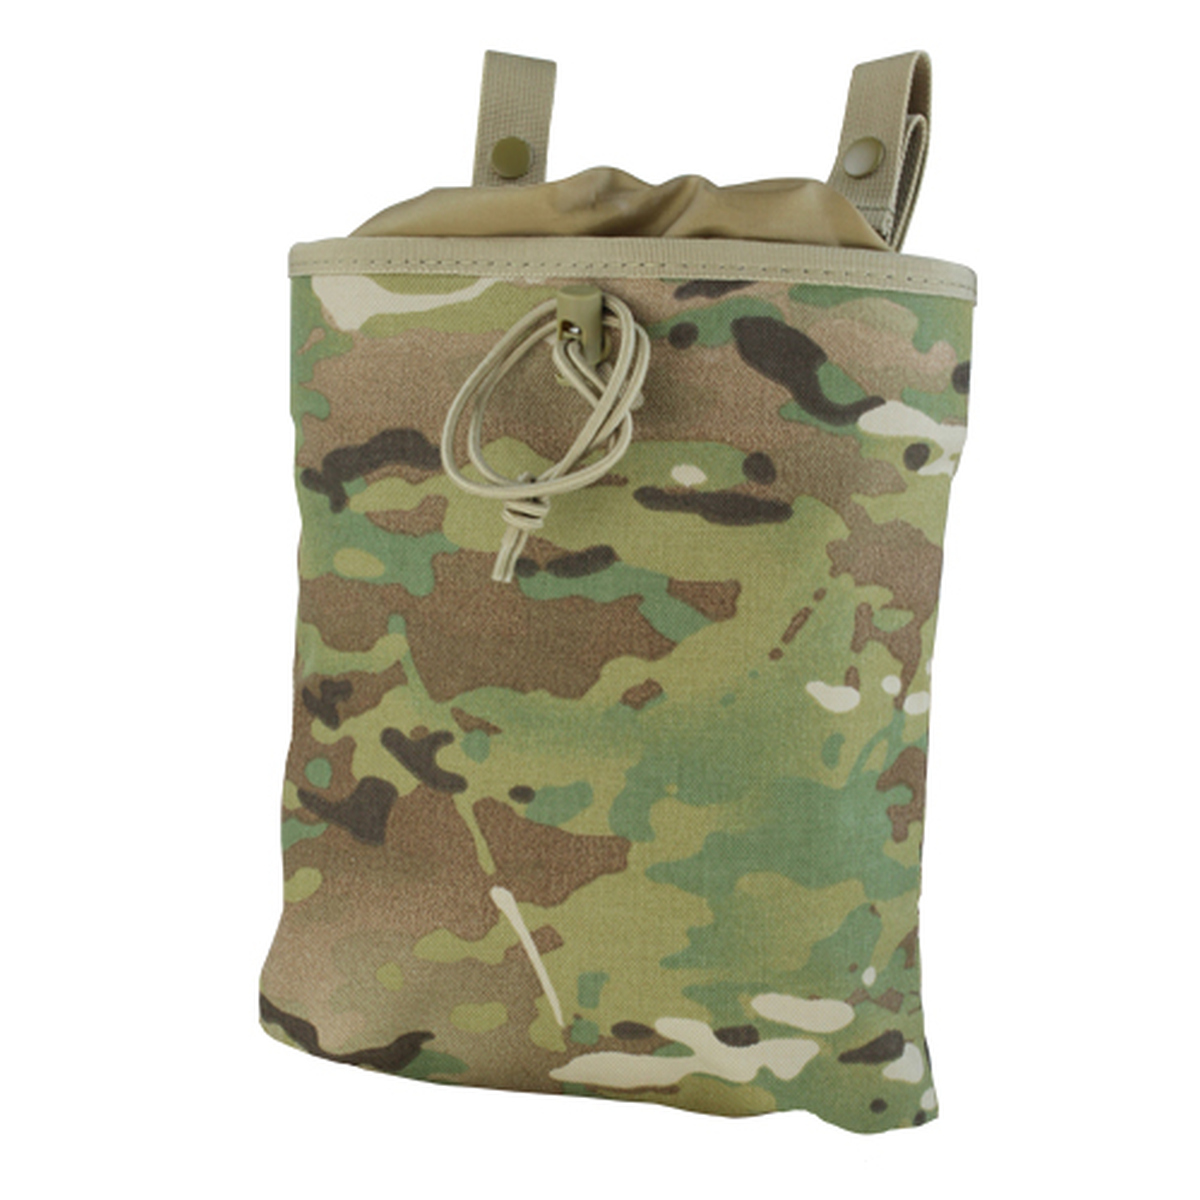 3 Fold Mag Recovery Pouch, Multicam-CondorOutdoor